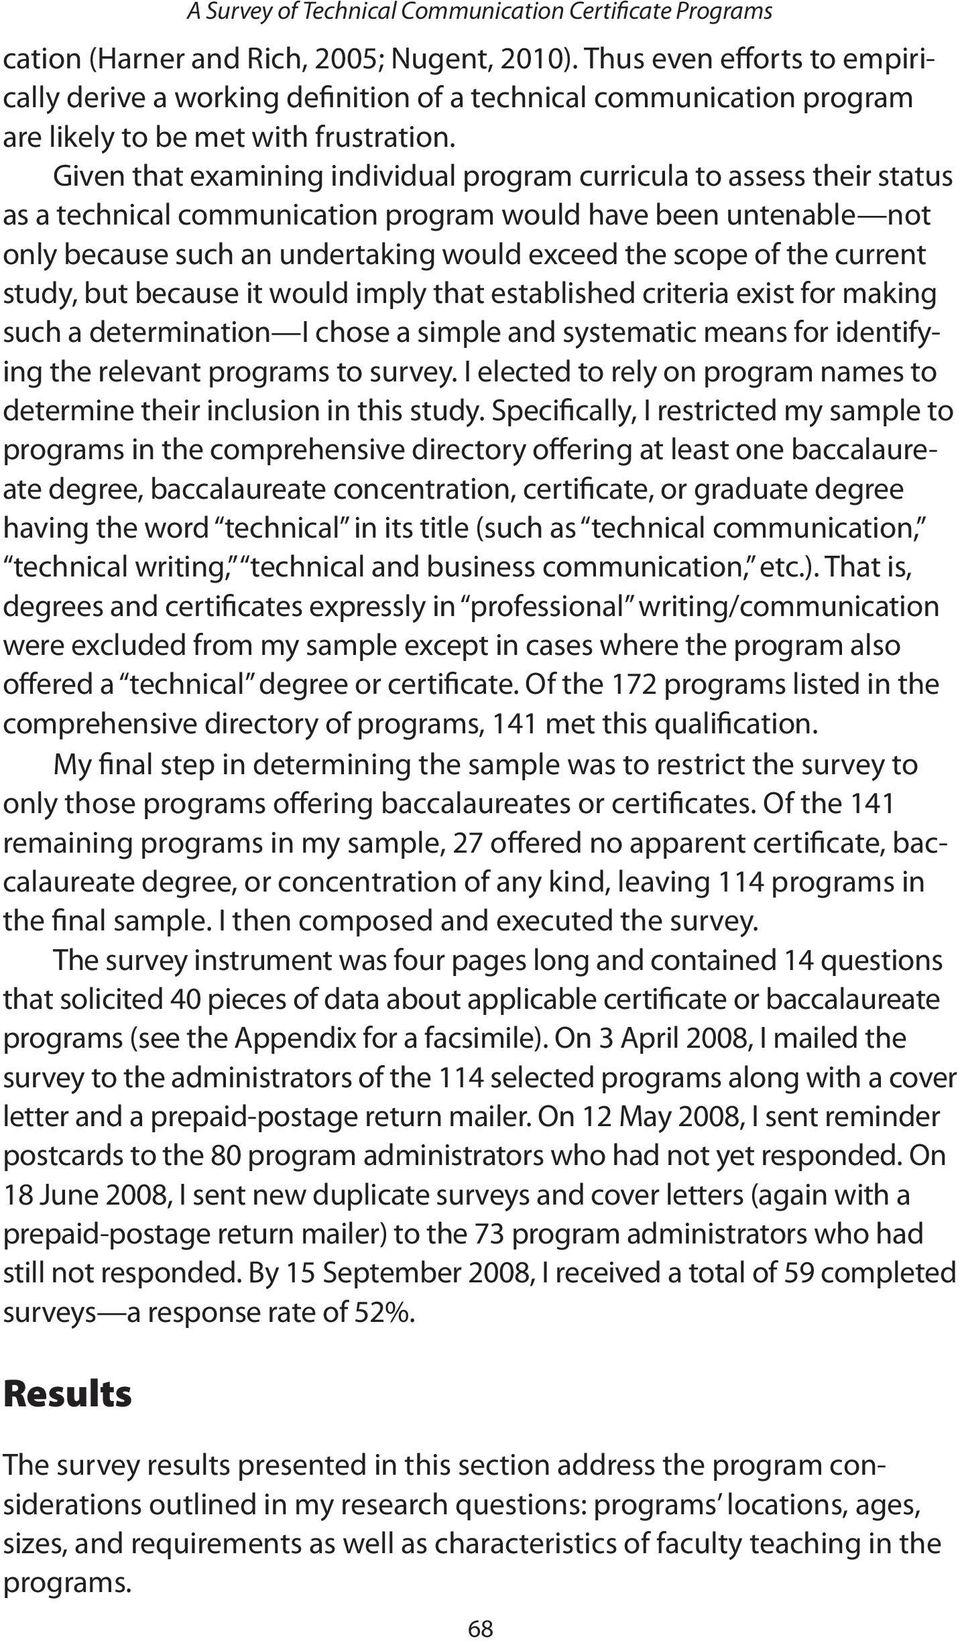 the current study, but because it would imply that established criteria exist for making such a determination I chose a simple and systematic means for identifying the relevant programs to survey.